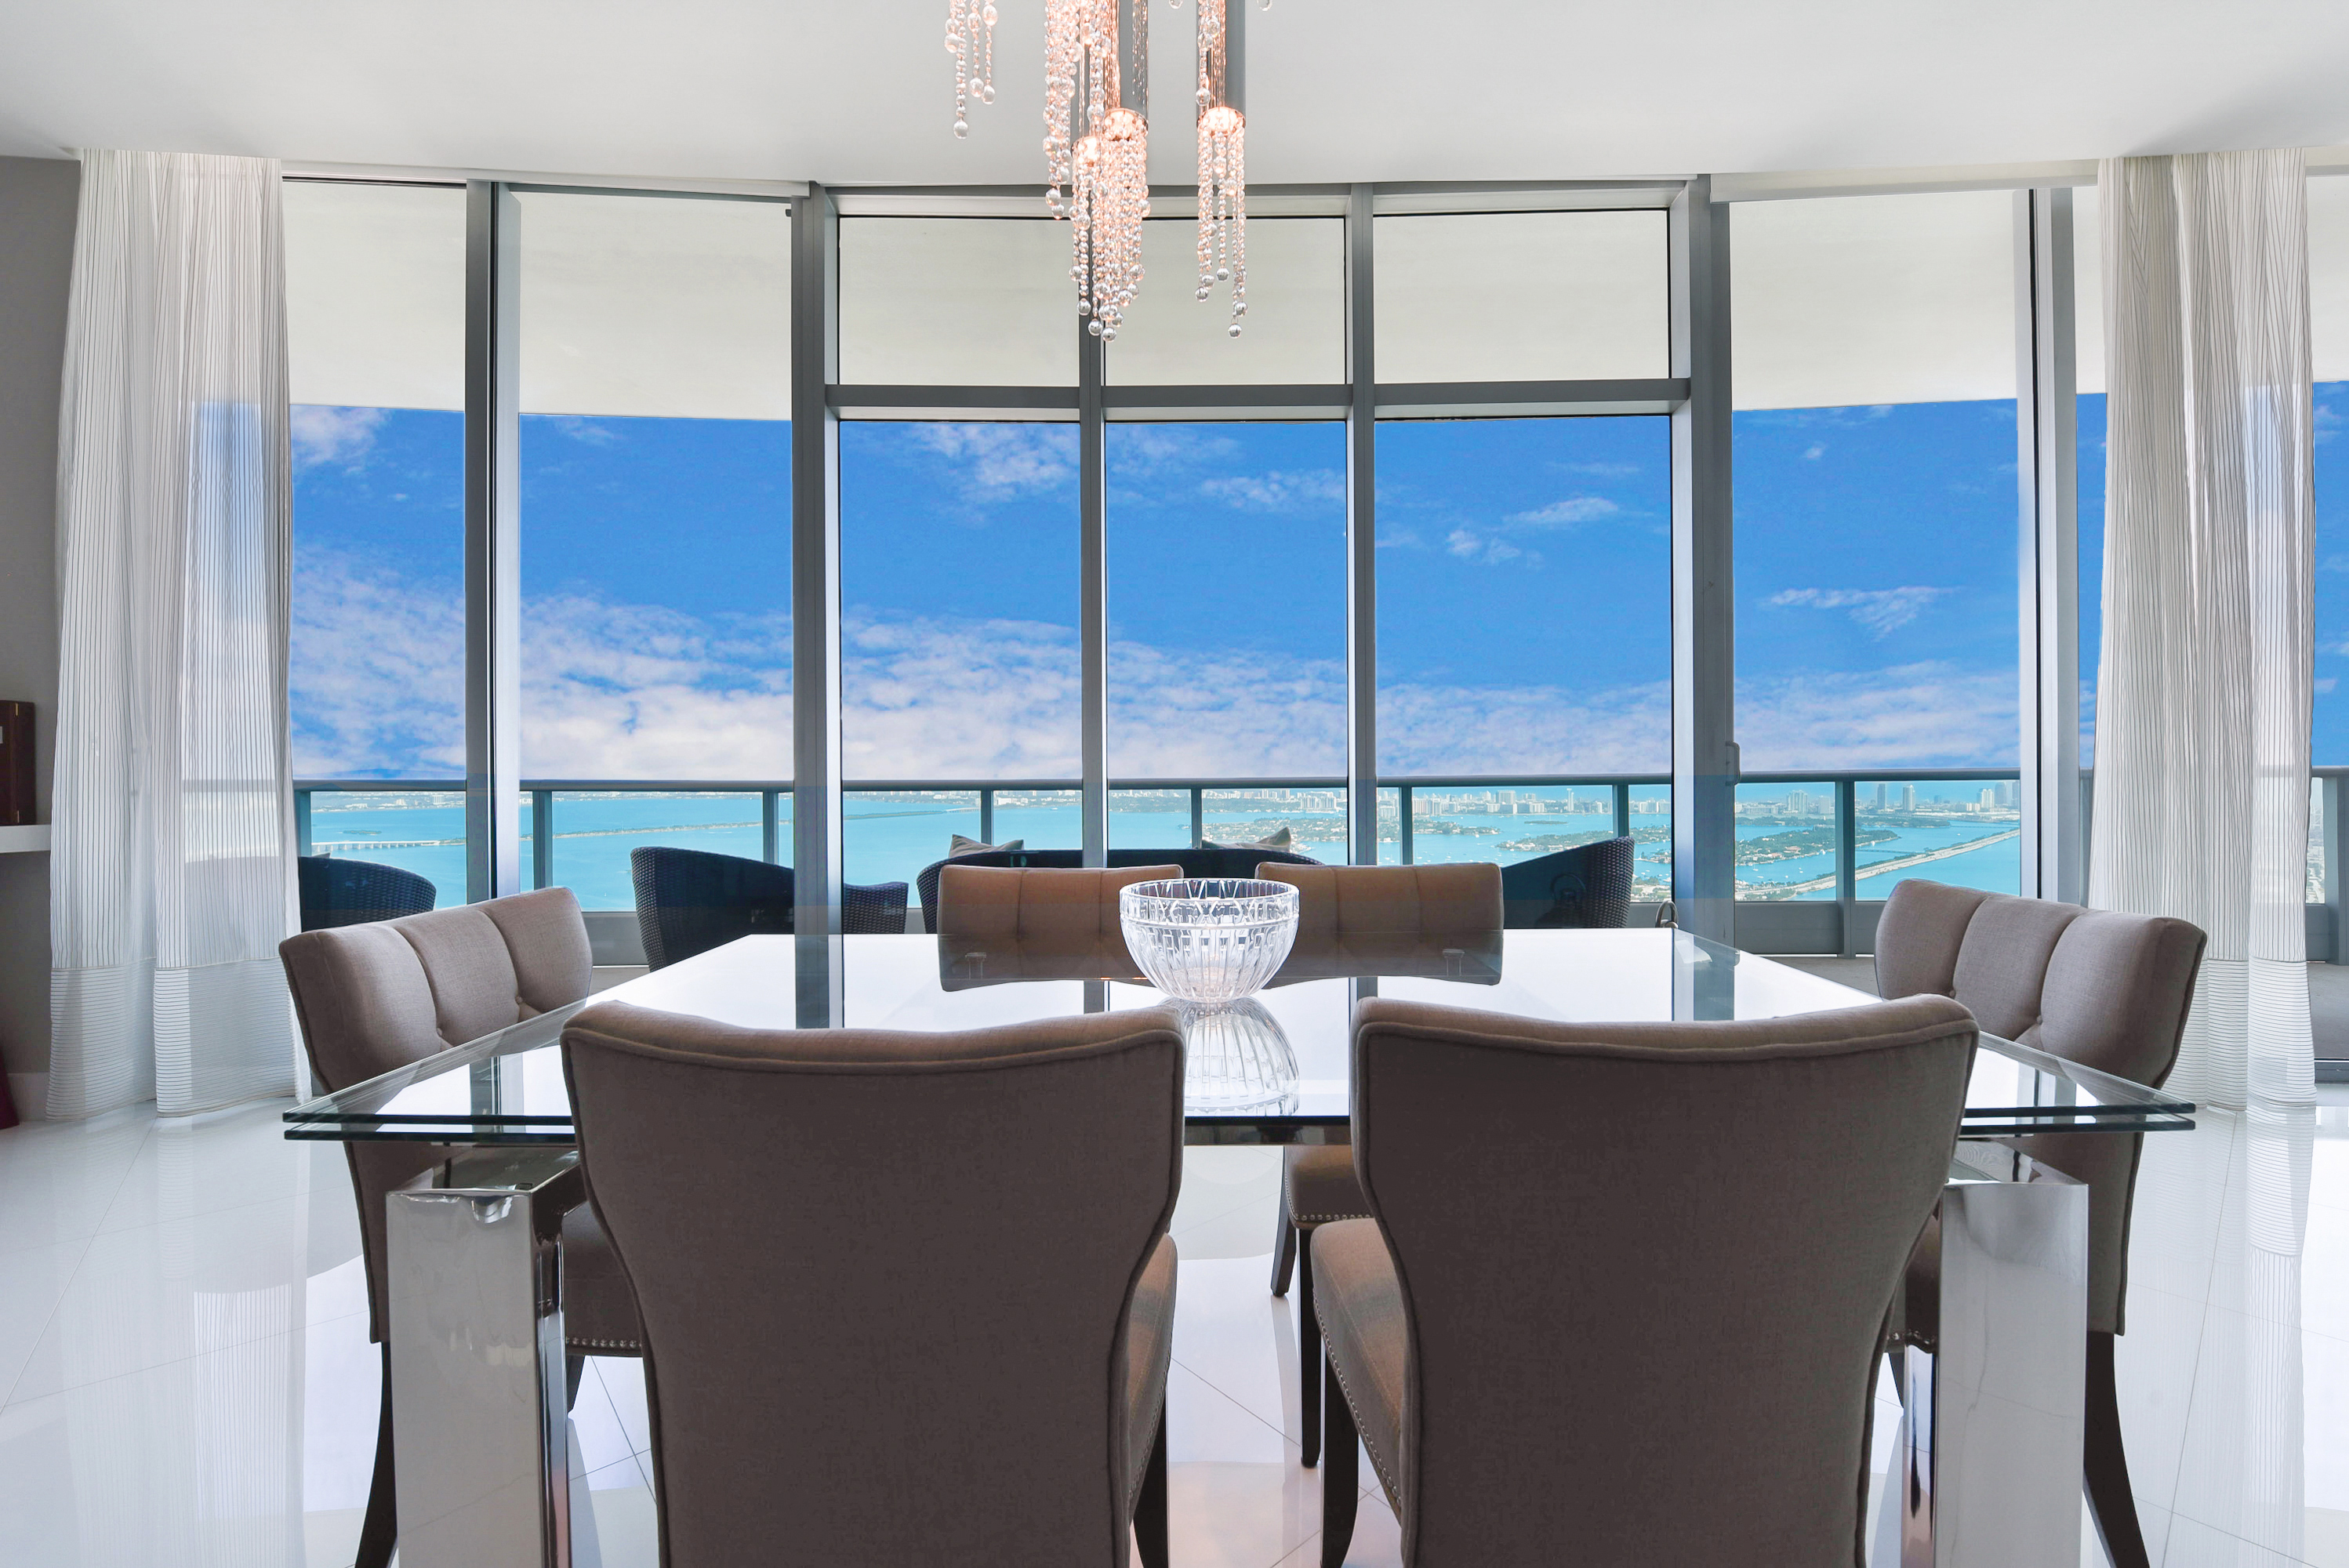 900 Biscayne Bay Penthouse 6307 Dining Room View